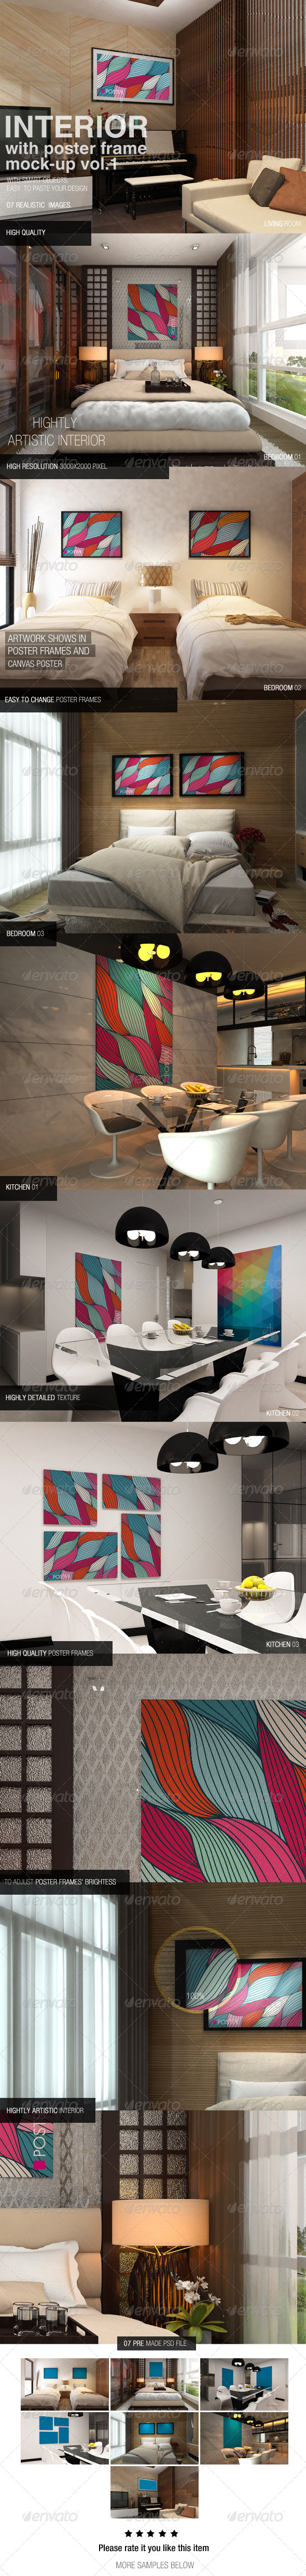 GraphicRiver Interior With Poster Frames Mockup Vol.1 6617101